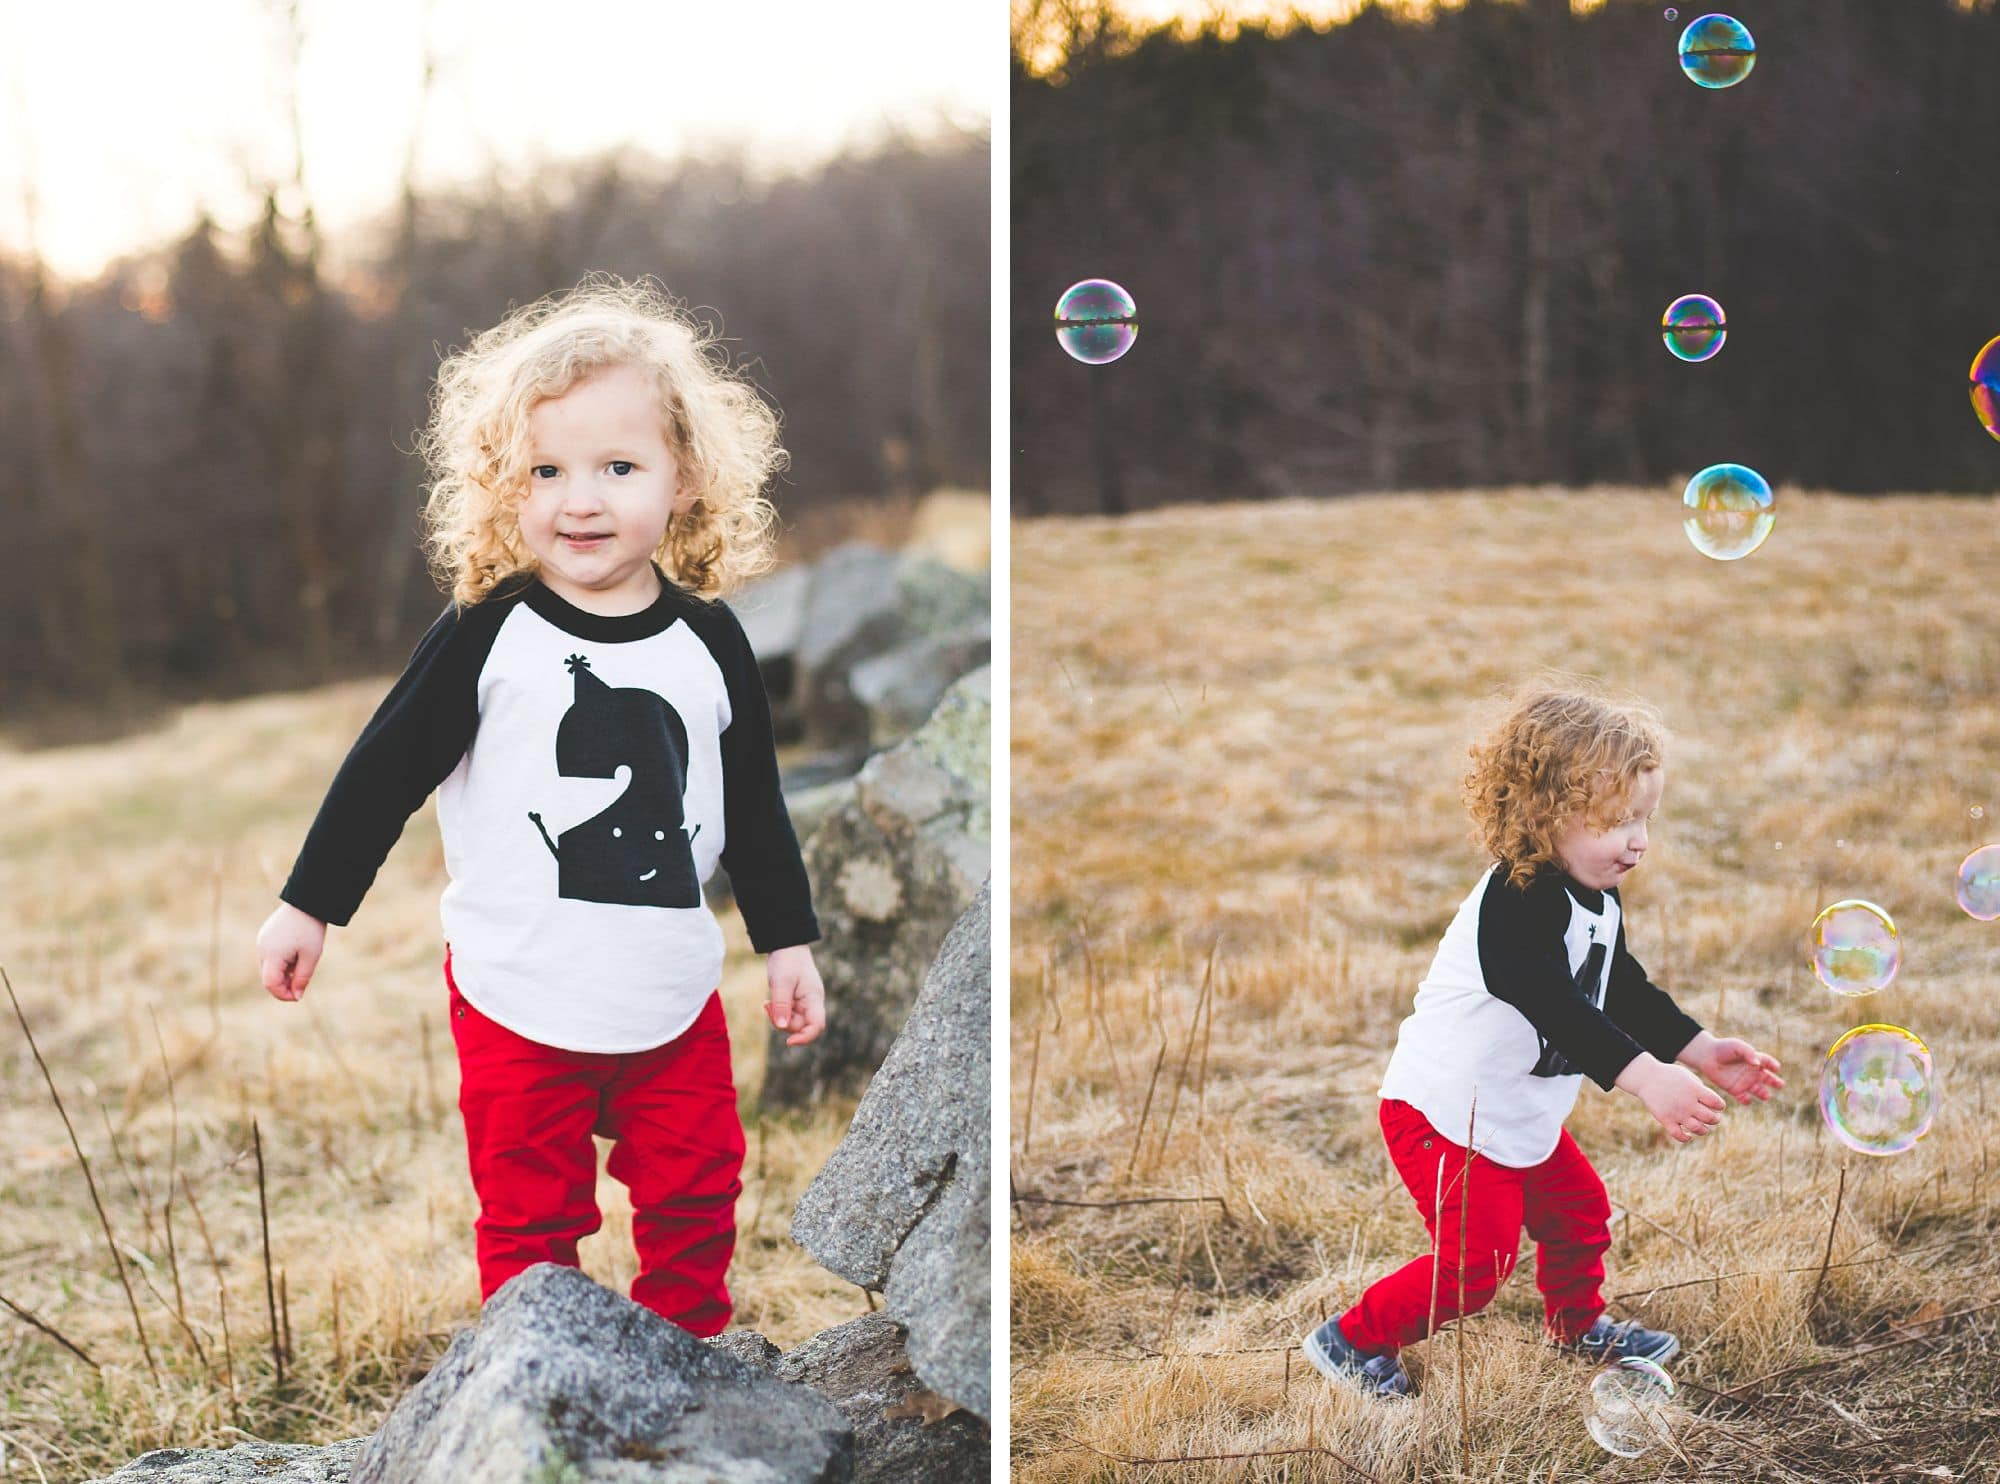 Cute little boy in red pants chases bubbles across an open field, laughing and smiling